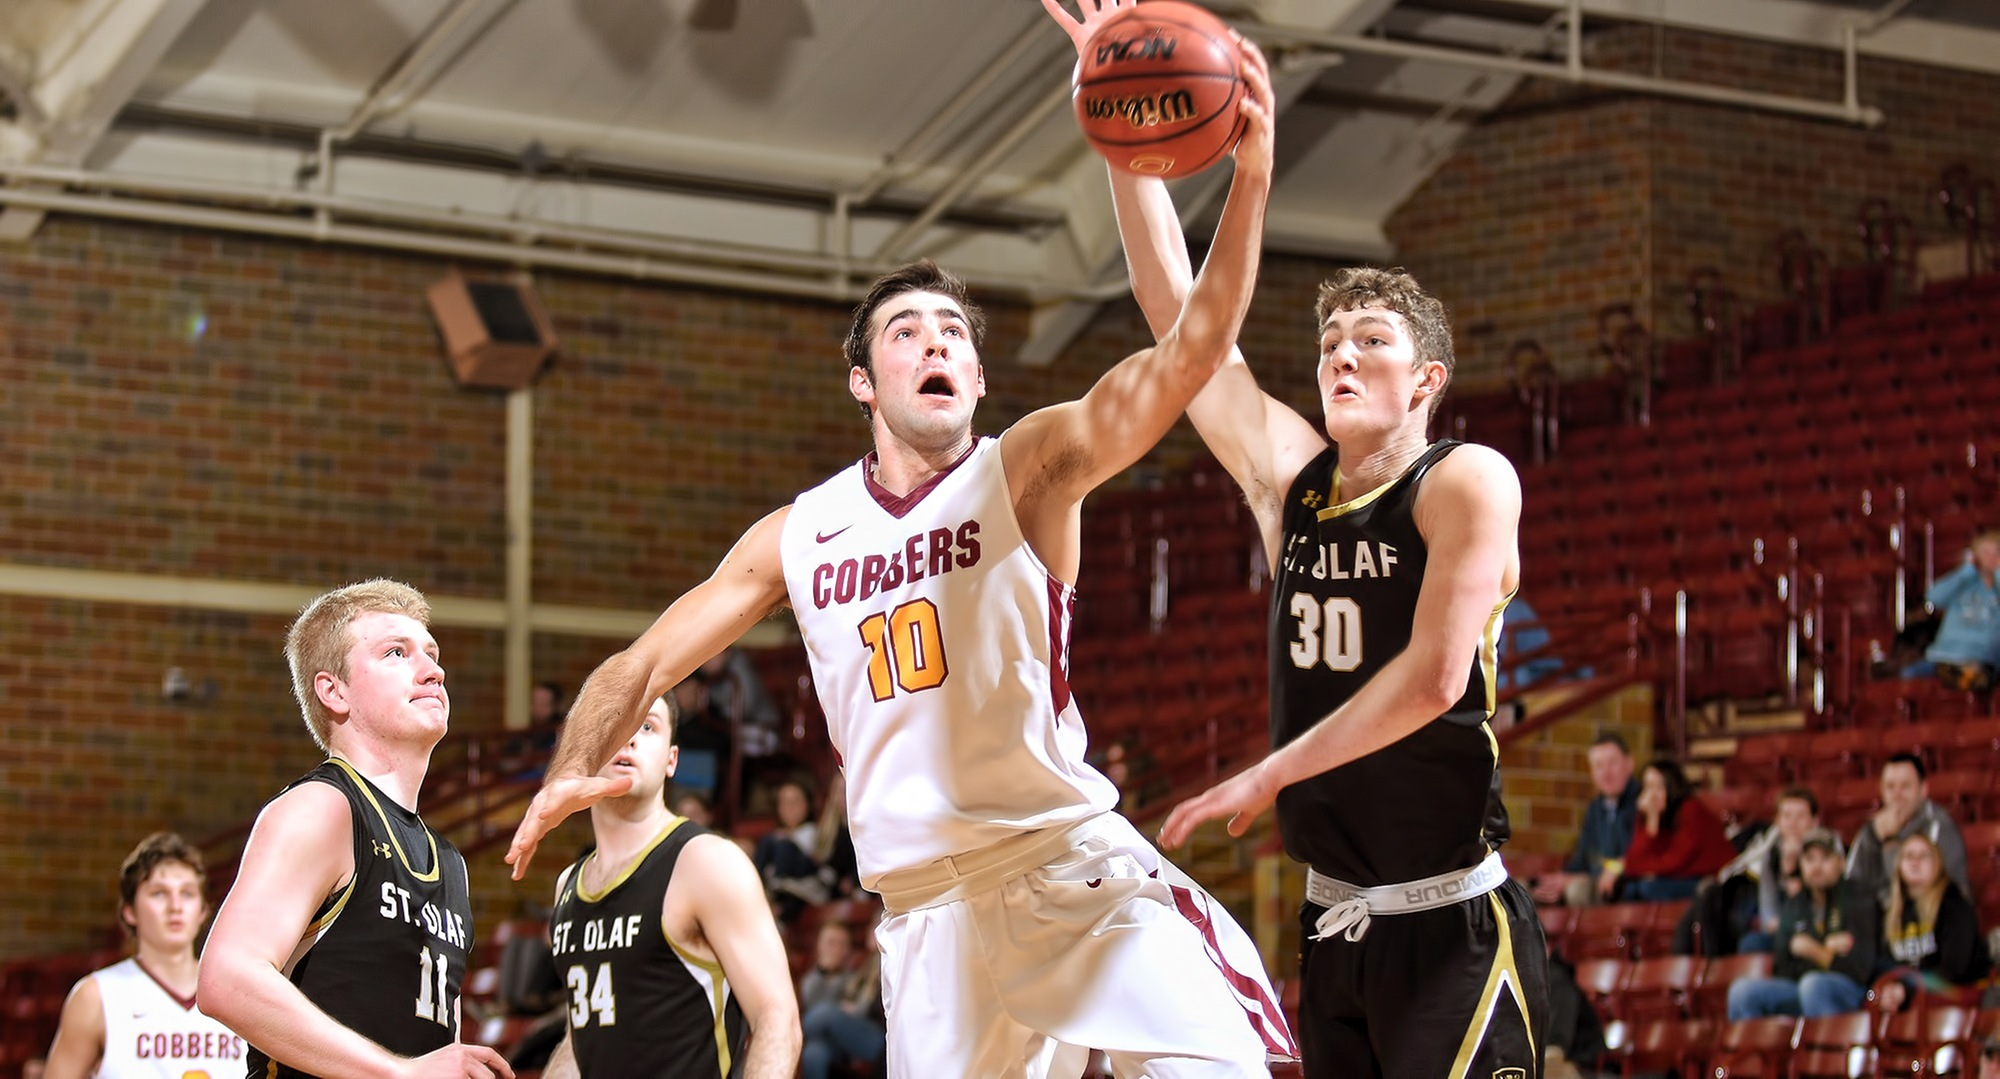 Senior Tommy Schyma goes to the basket in the second half for two of his game-high 18 points against St. Olaf.